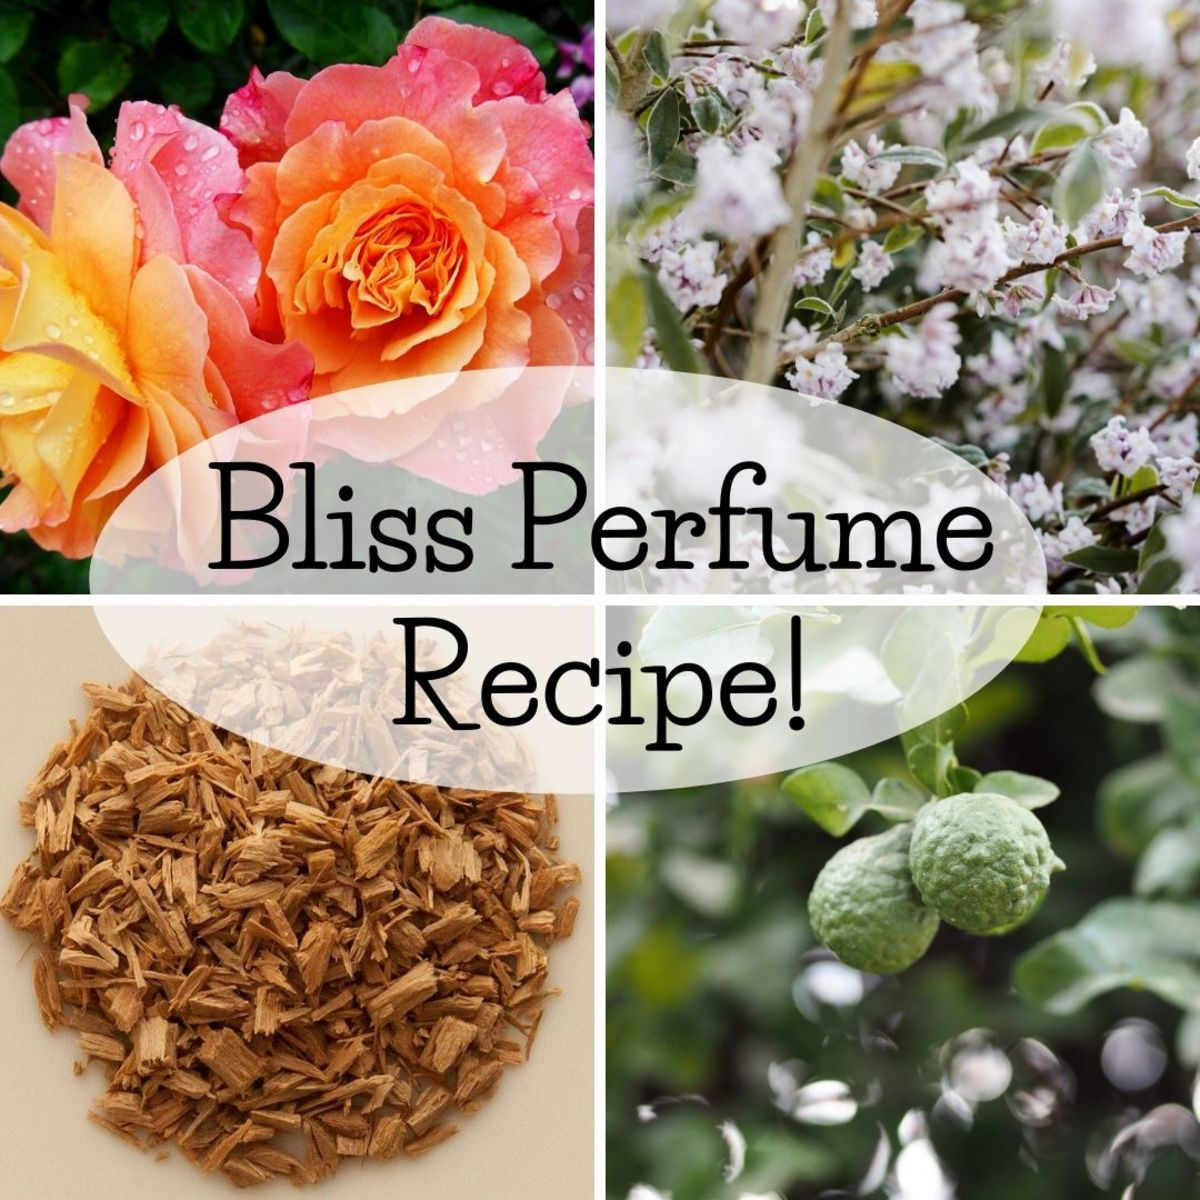 Combine the following essential oils with their corresponding formula: 1 drop each of rose and jasmine; 2 drops each of sandalwood and bergamot